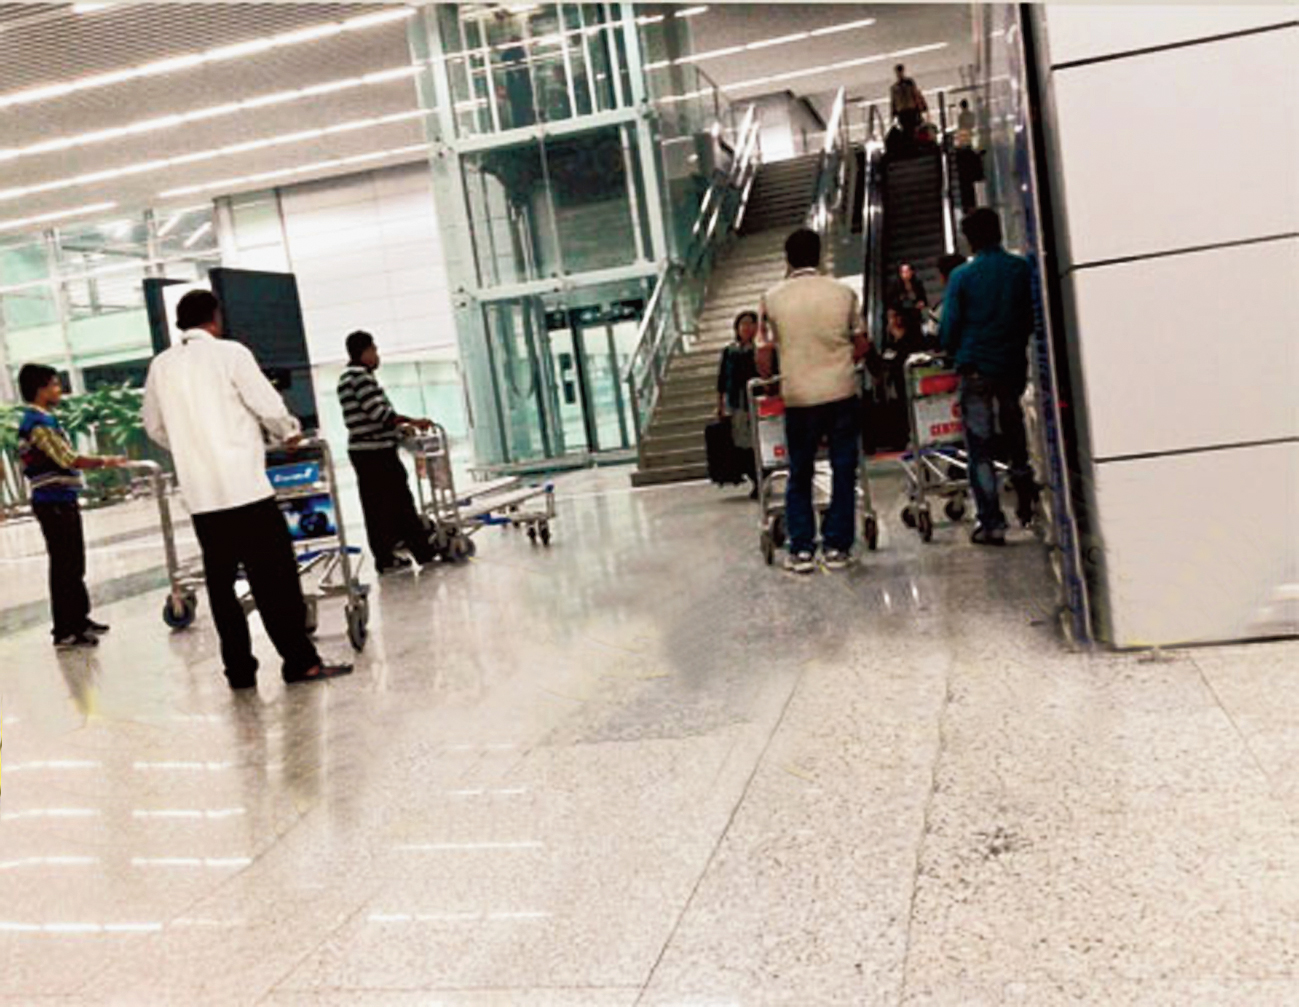 Trolley retrievers masquerading as passenger assistance staff (published in Metro on January 6, 2015) in the international arrival lounge of Calcutta airport